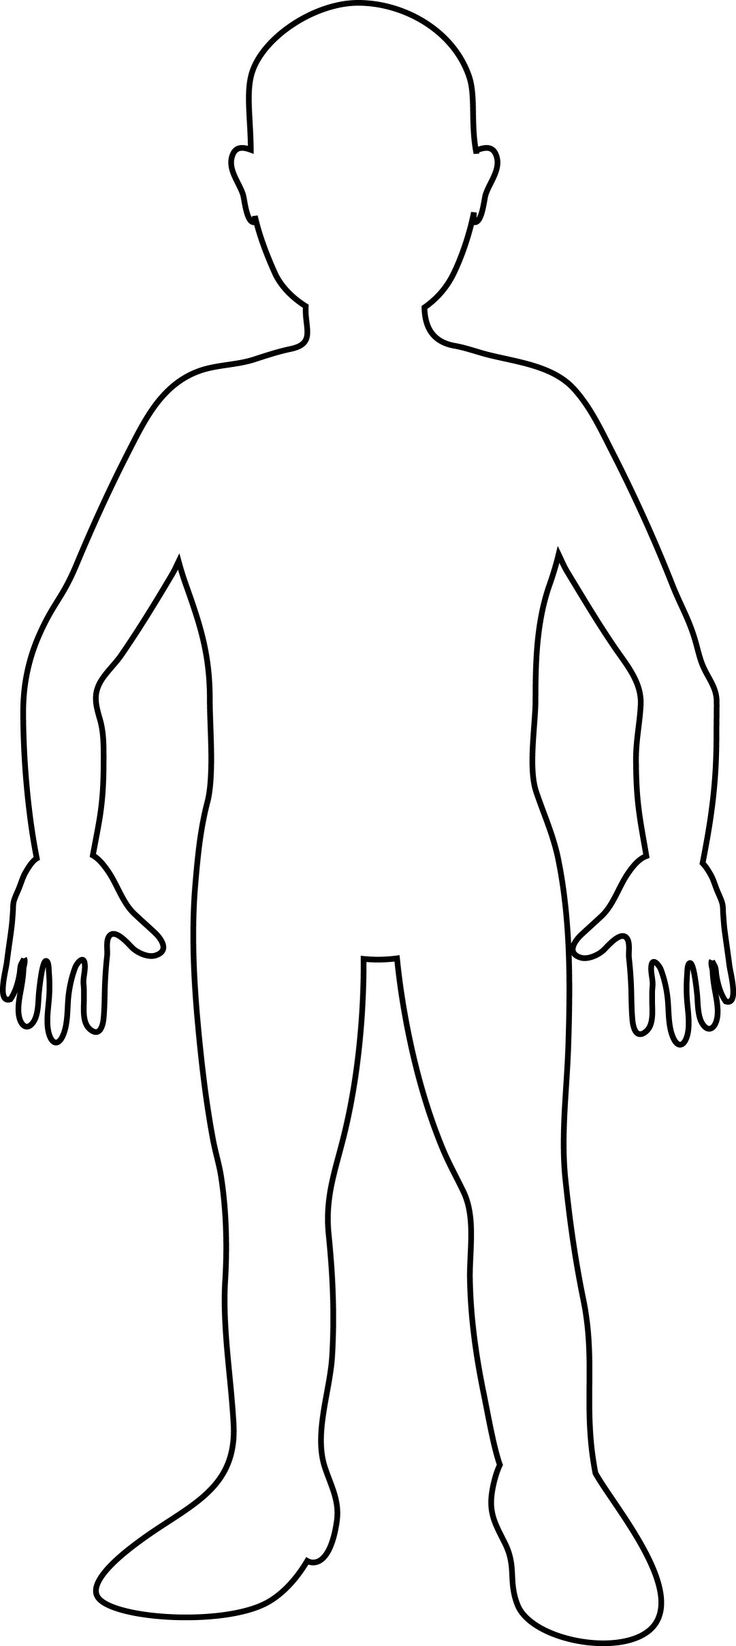 Free Human Body Outline Printable, Download Free Clip Art